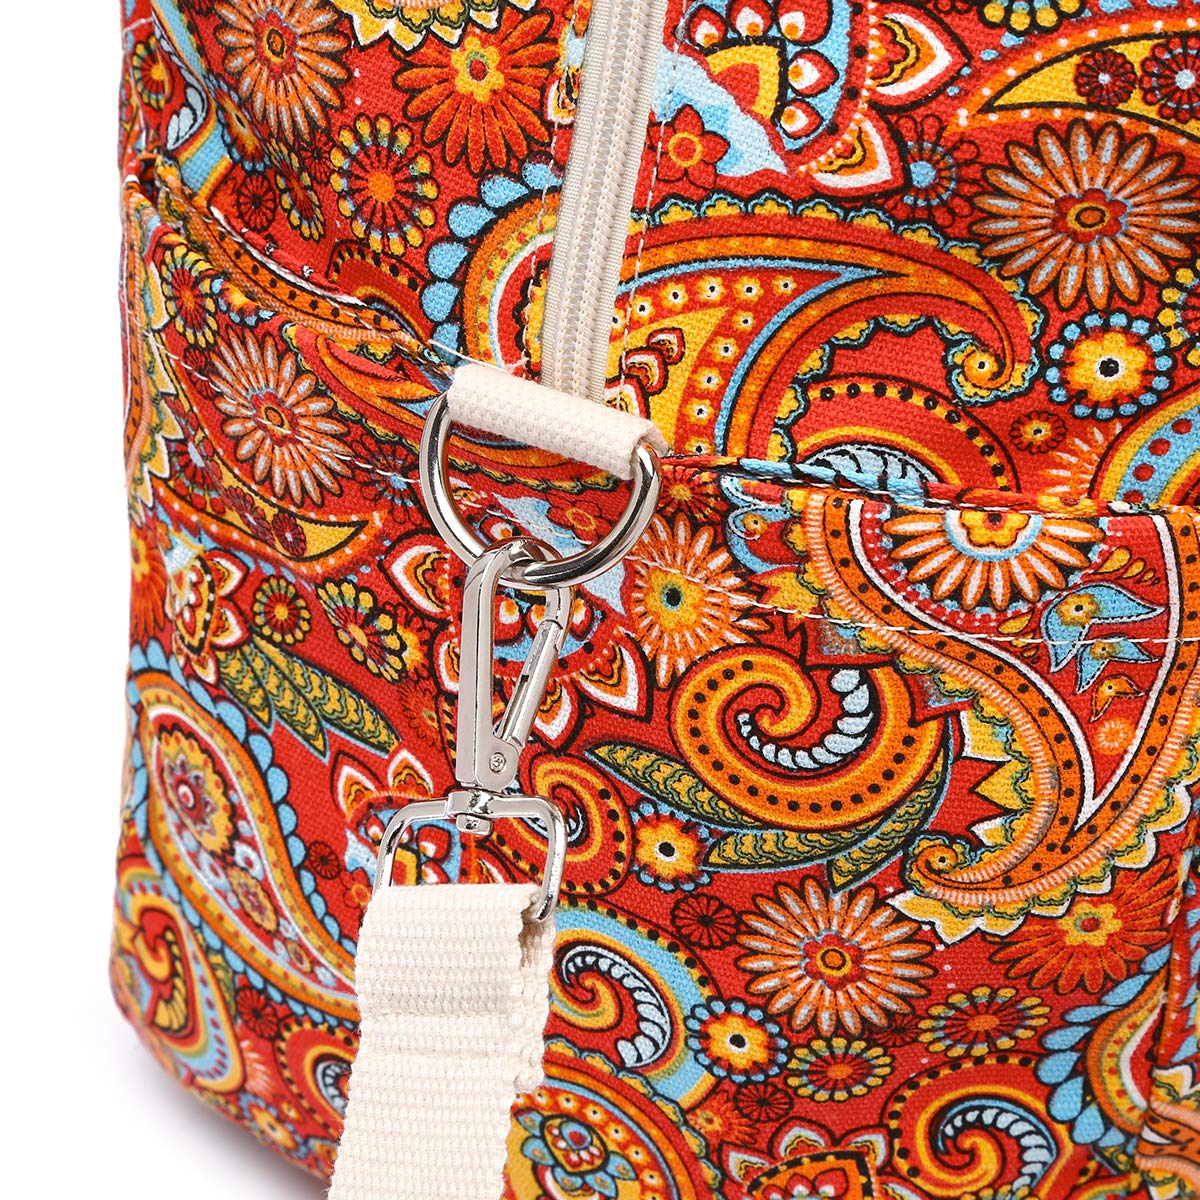 Malirona Women's Canvas Overnight Weekender Bag Carry On Travel Duffel Tote Bag Bohemian Flower (Red Flower) by Malirona (Image #7)